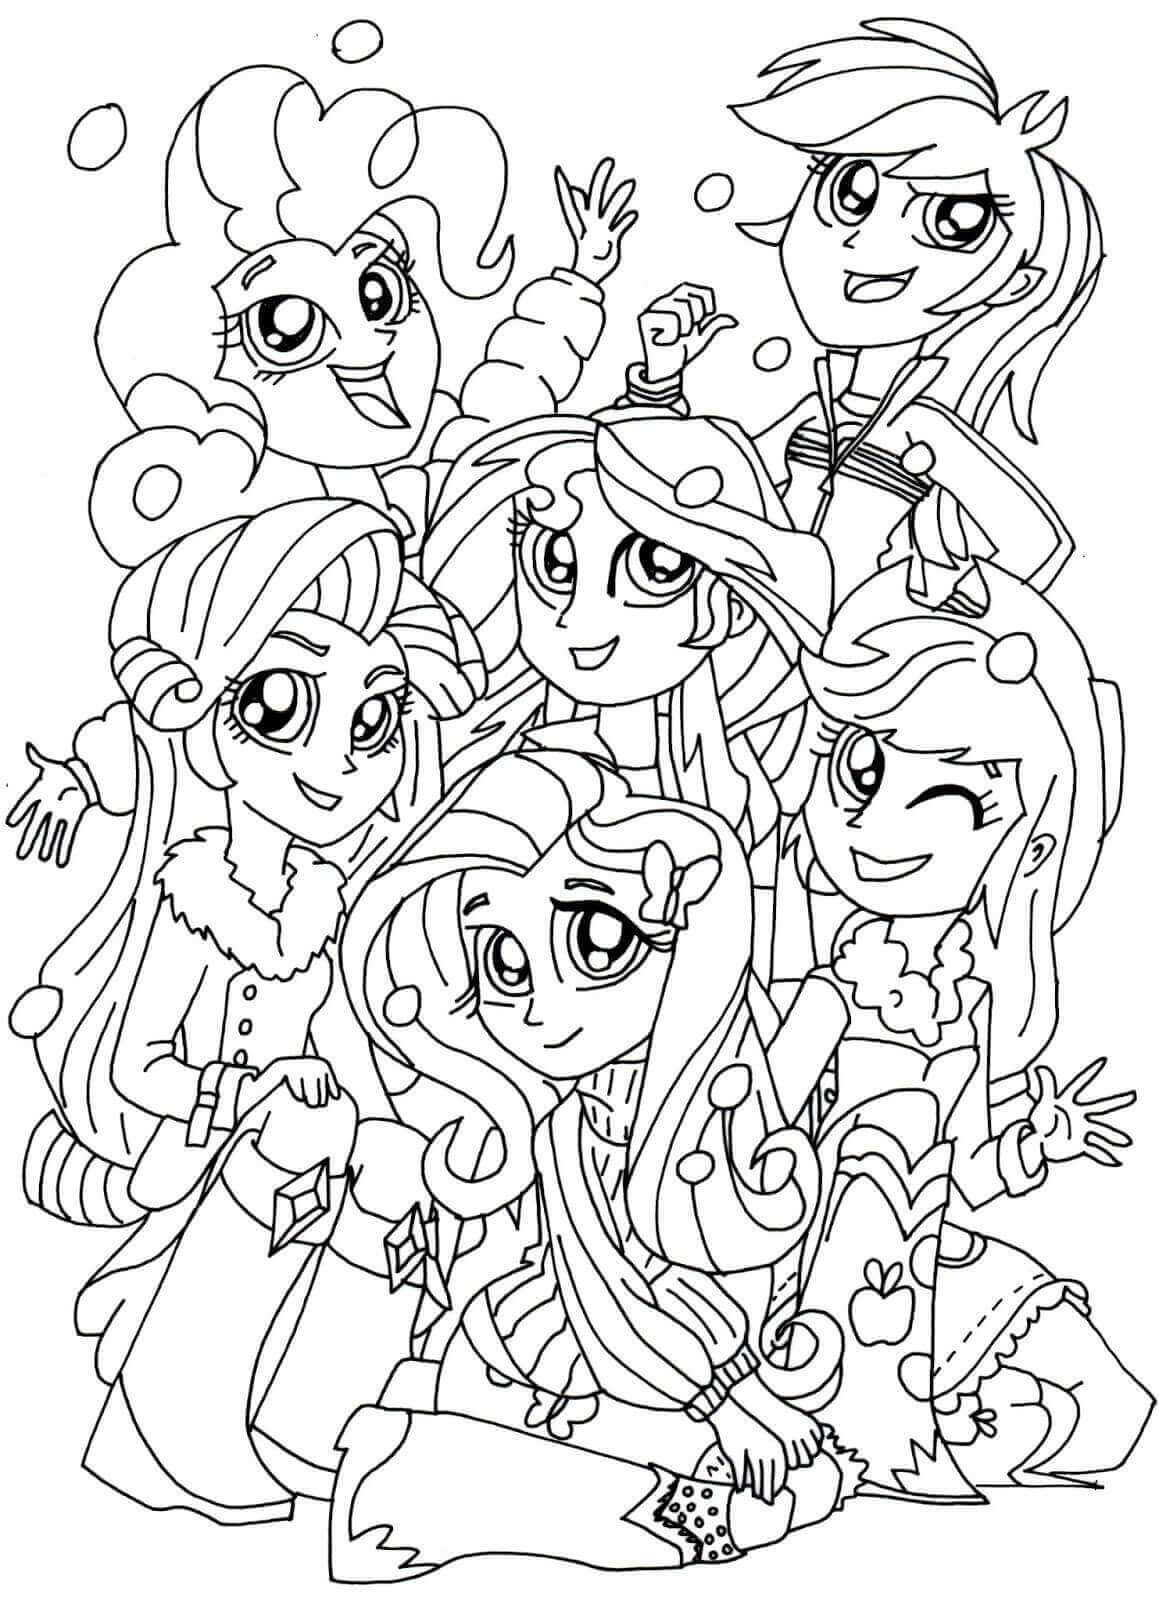 The Rainbooms Coloring Page